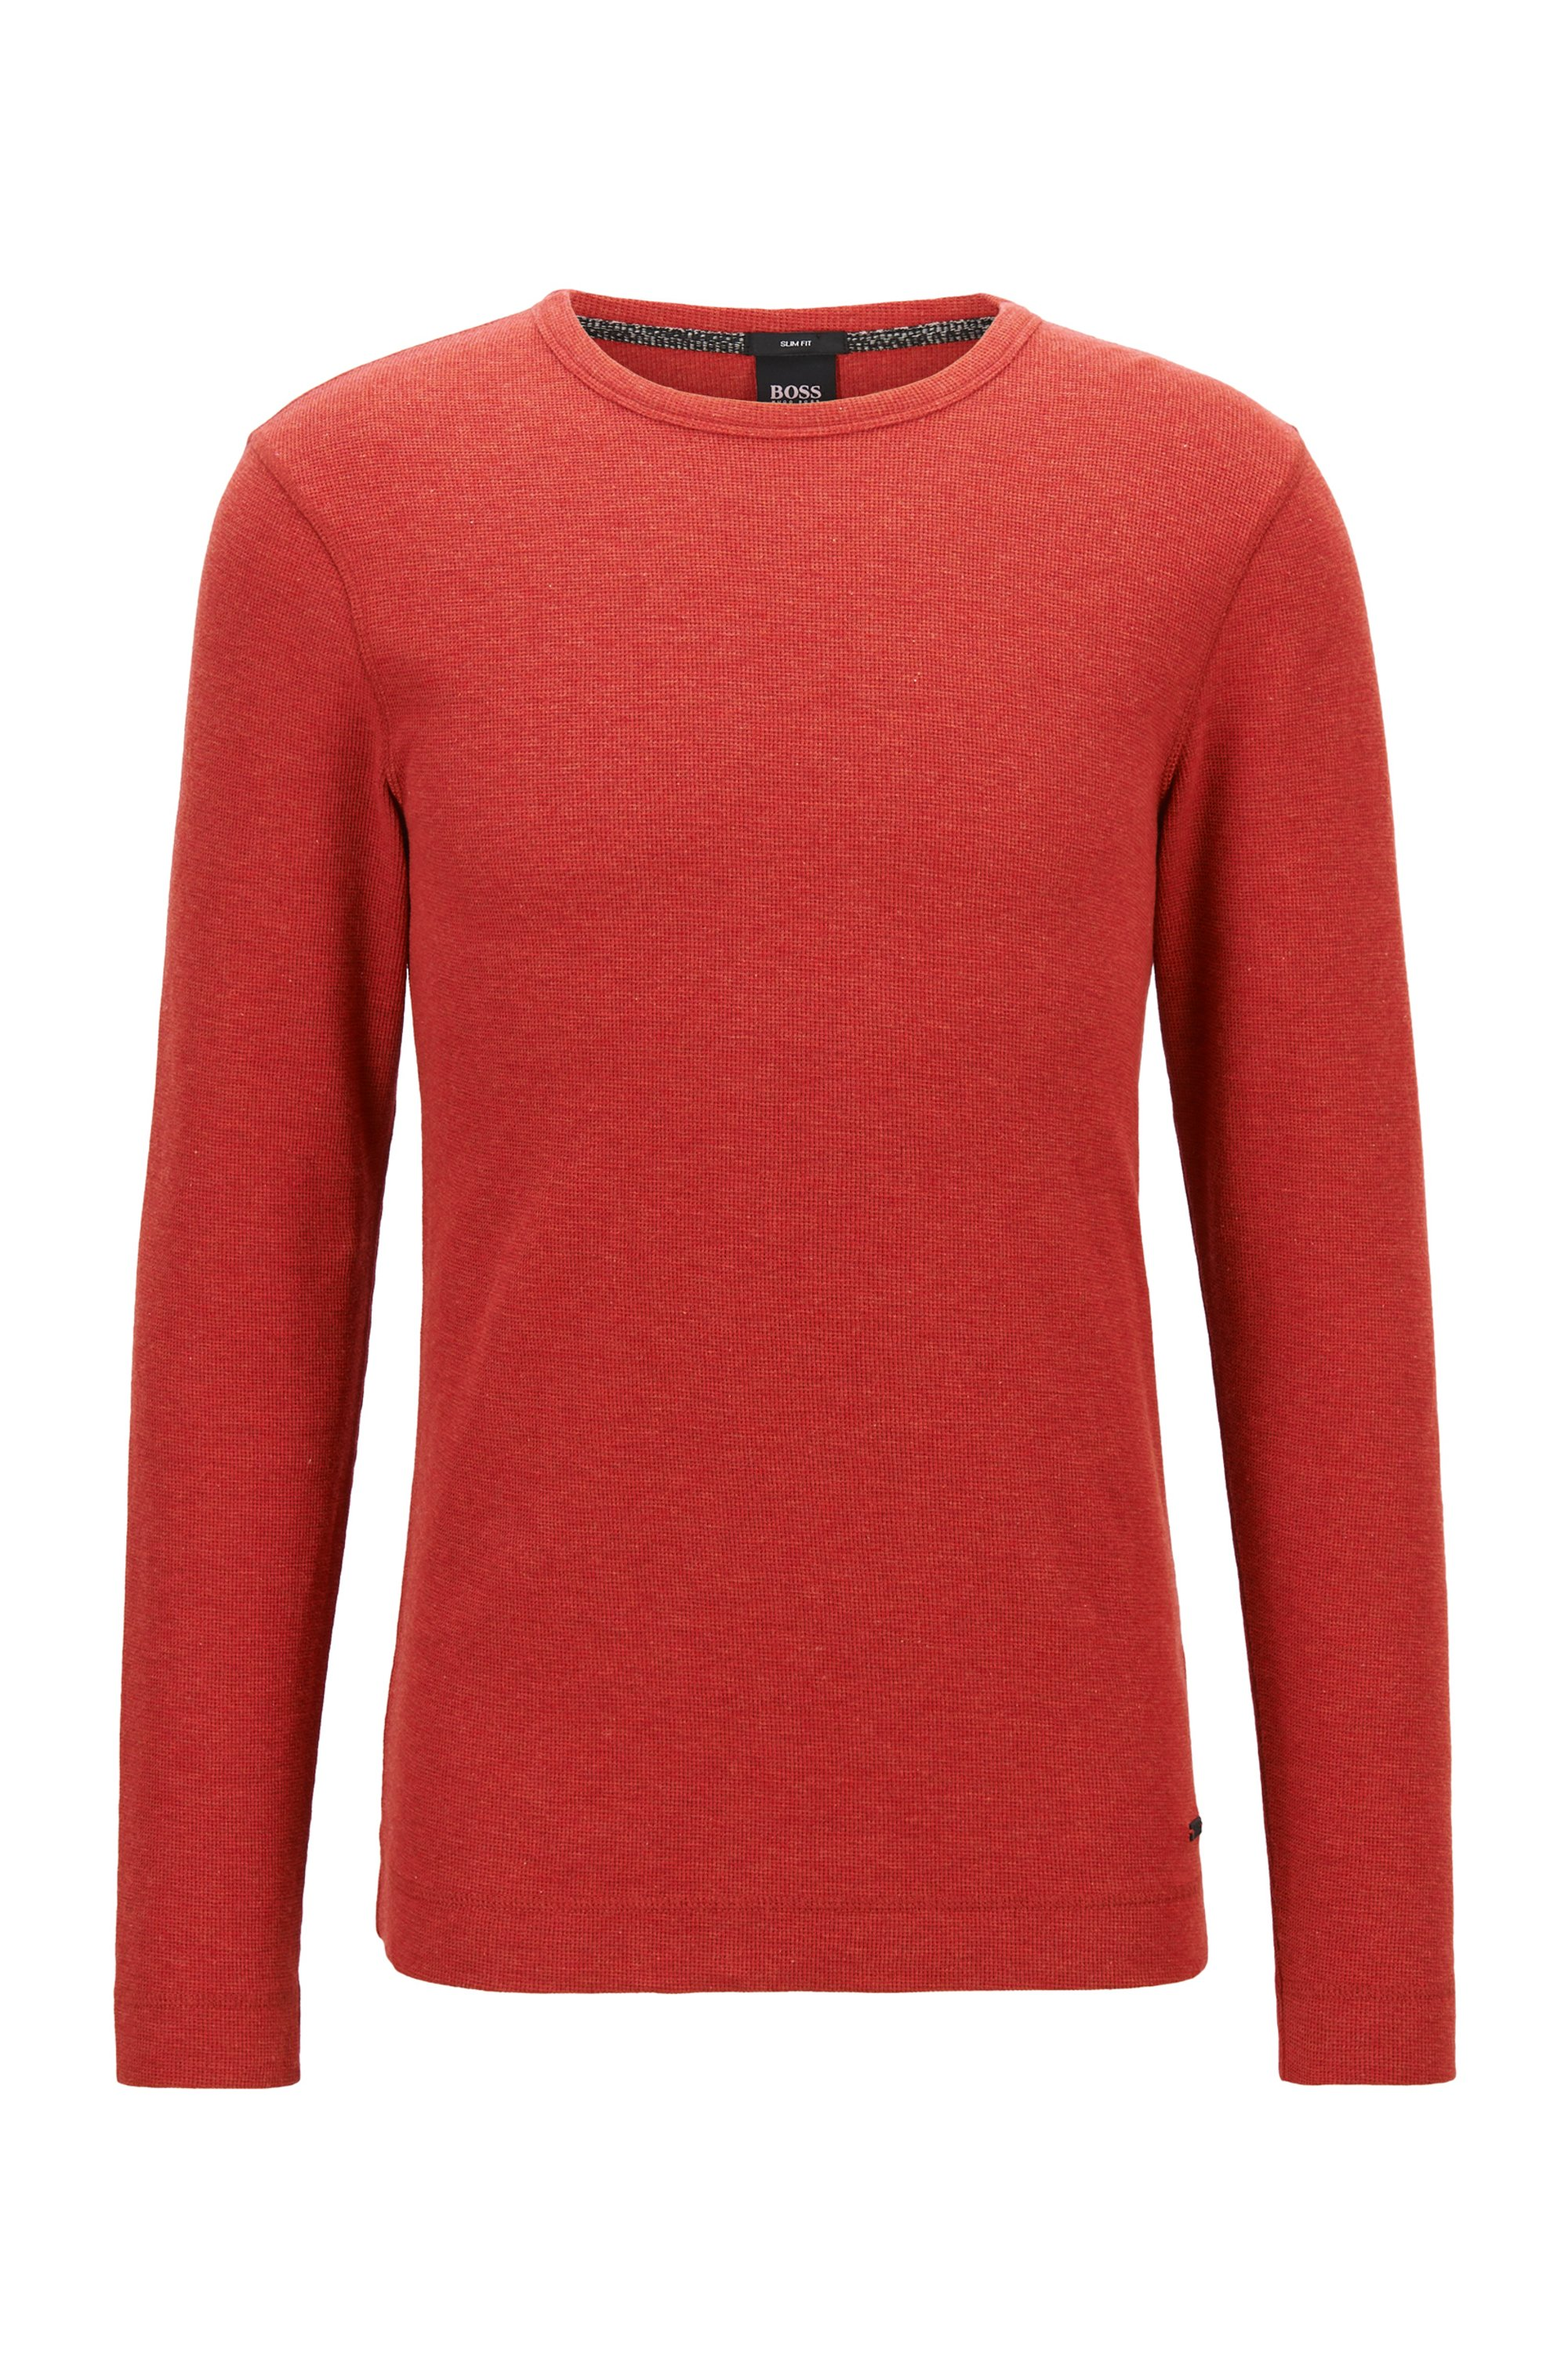 T-shirt Slim Fit à manches longues en coton gaufré, Rouge